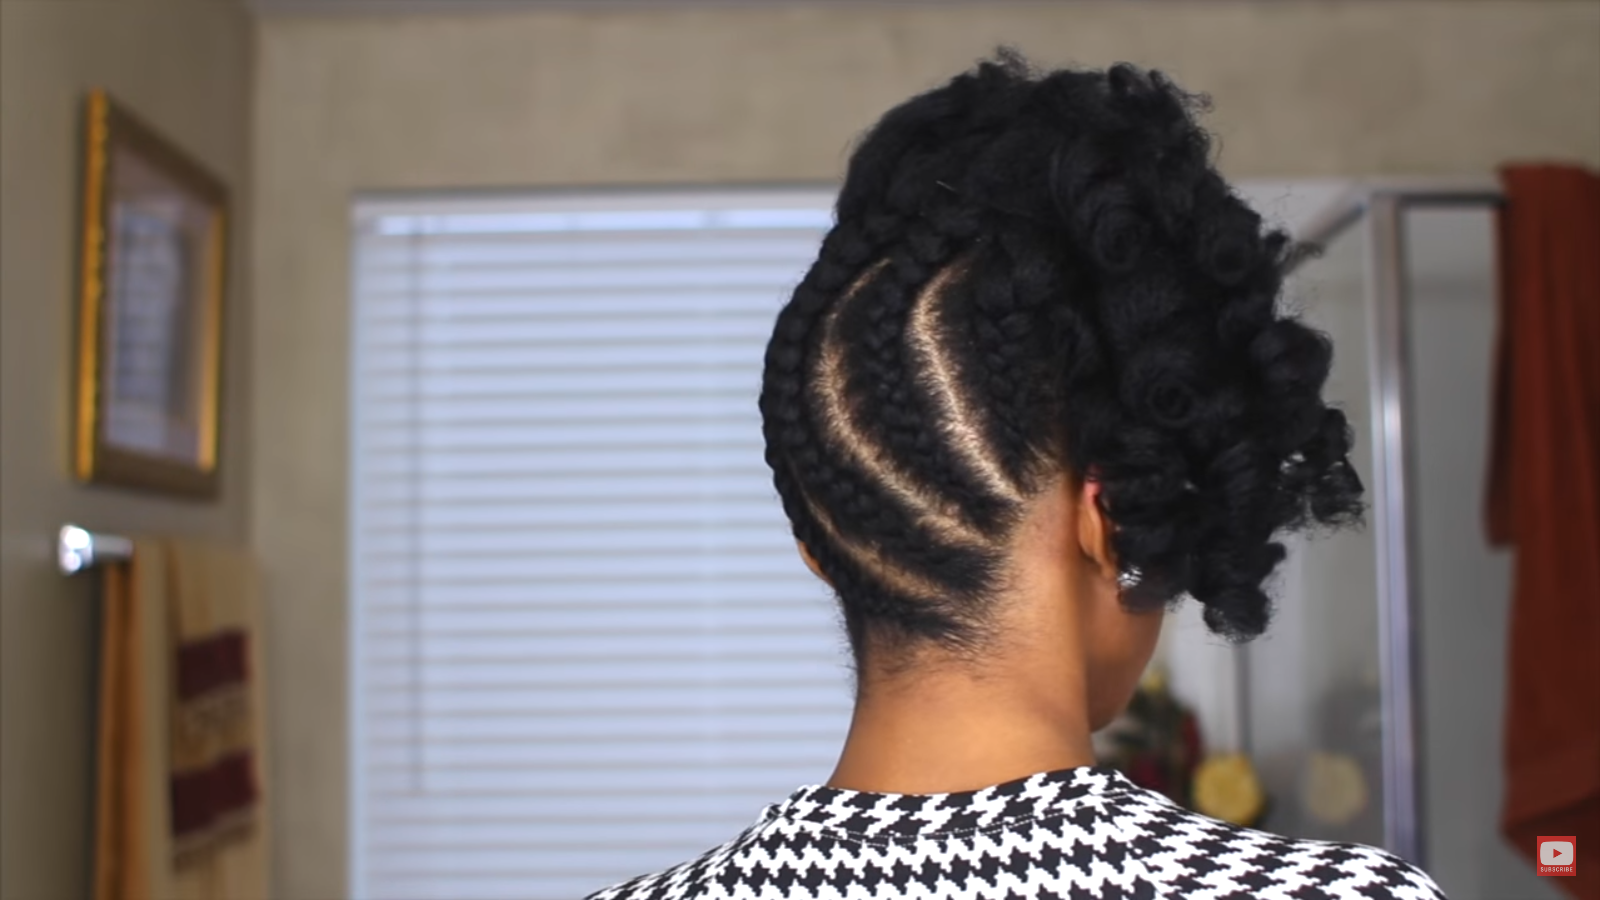 Think Pineapple Updos Take Too Long This Braided Pineapple Updo On Natural Hair Takes Less Than 10 Mins African American Hairstyle Videos Aahv Pineapple Hairstyle Tree Braids Hairstyles Kids Braided Hairstyles